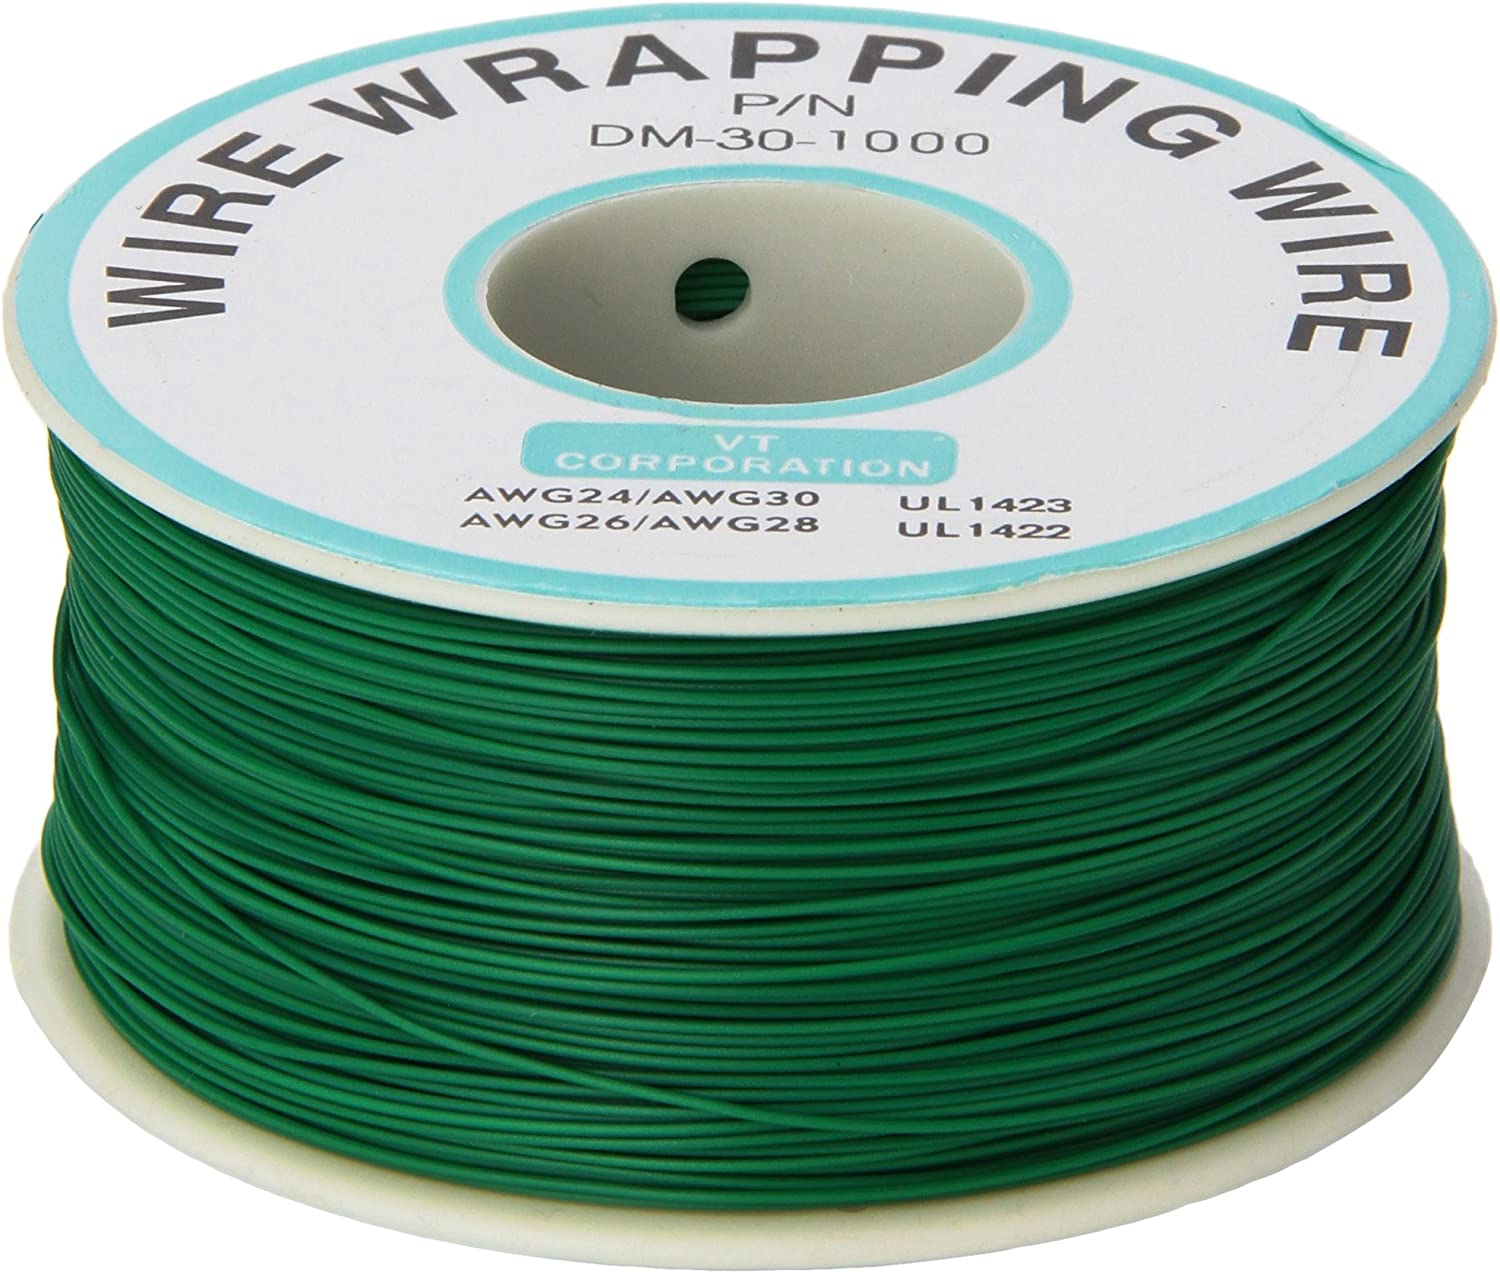 250M Electrical Wire Wrapping Wire Wrap With Copper Core PCB Wire Tool Kit